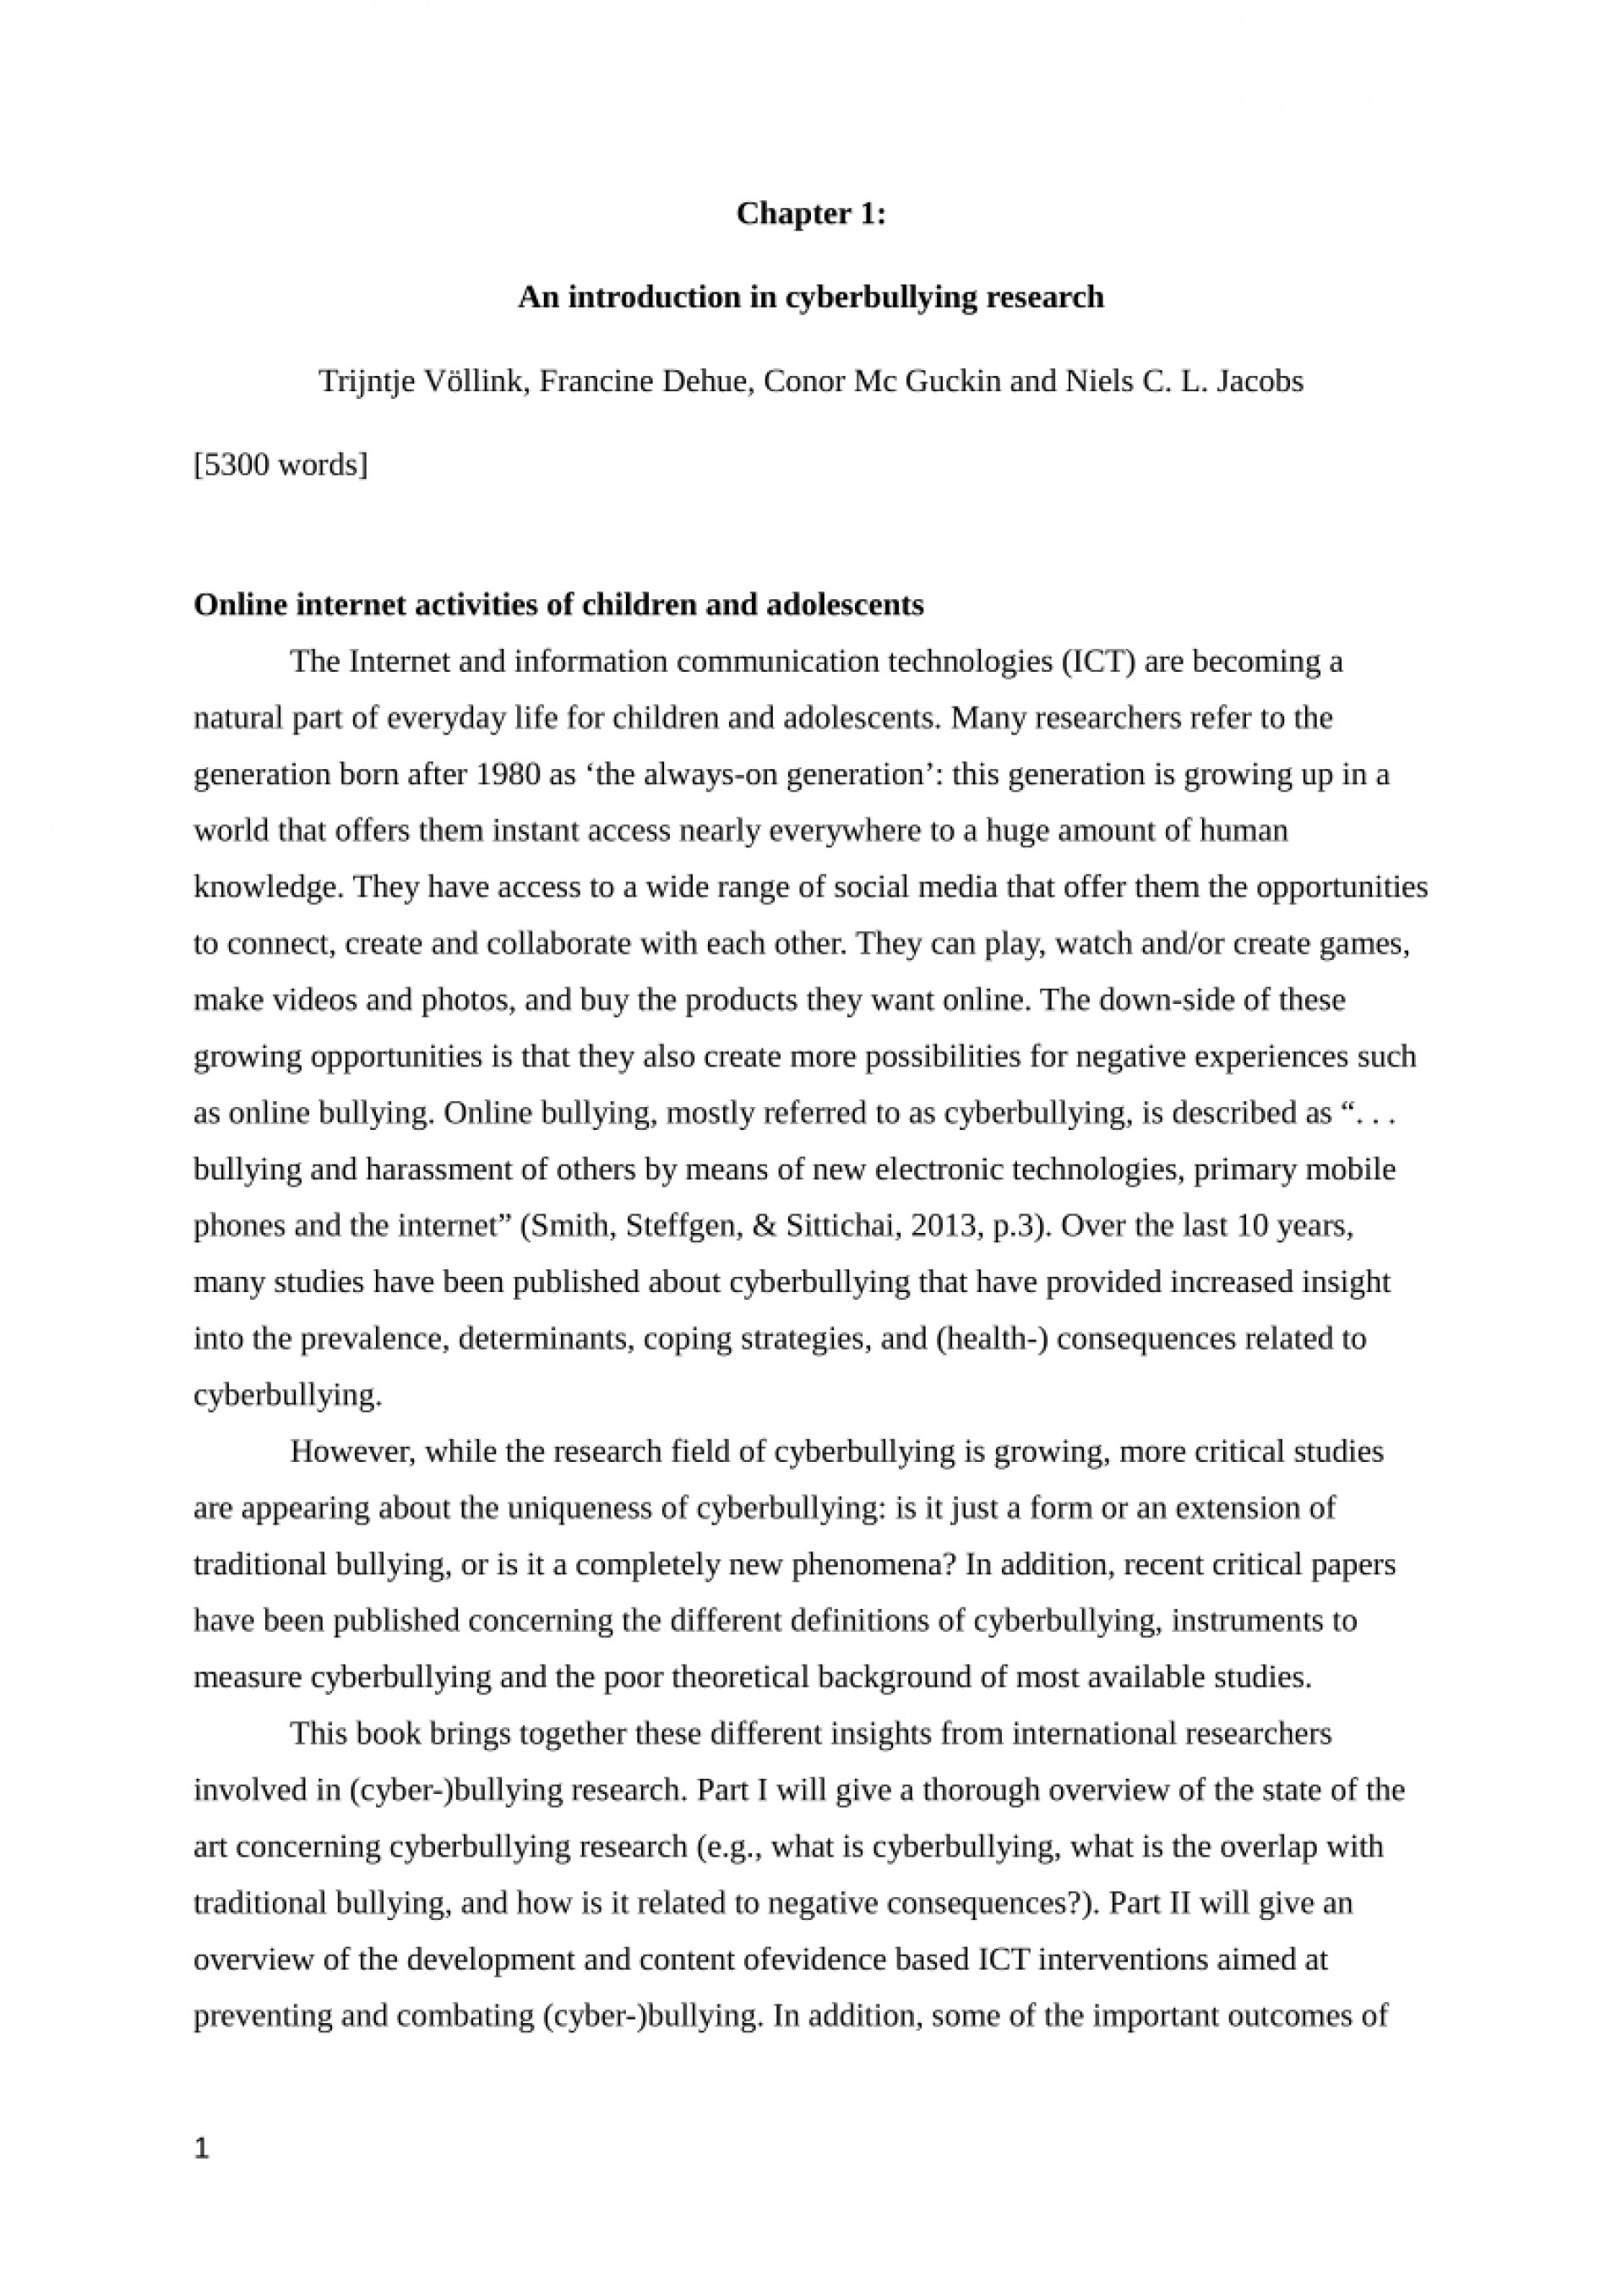 001 Largepreview Research Paper Cyberbullying Remarkable Papers Abstract About Cyber Bullying Introduction Example 1920